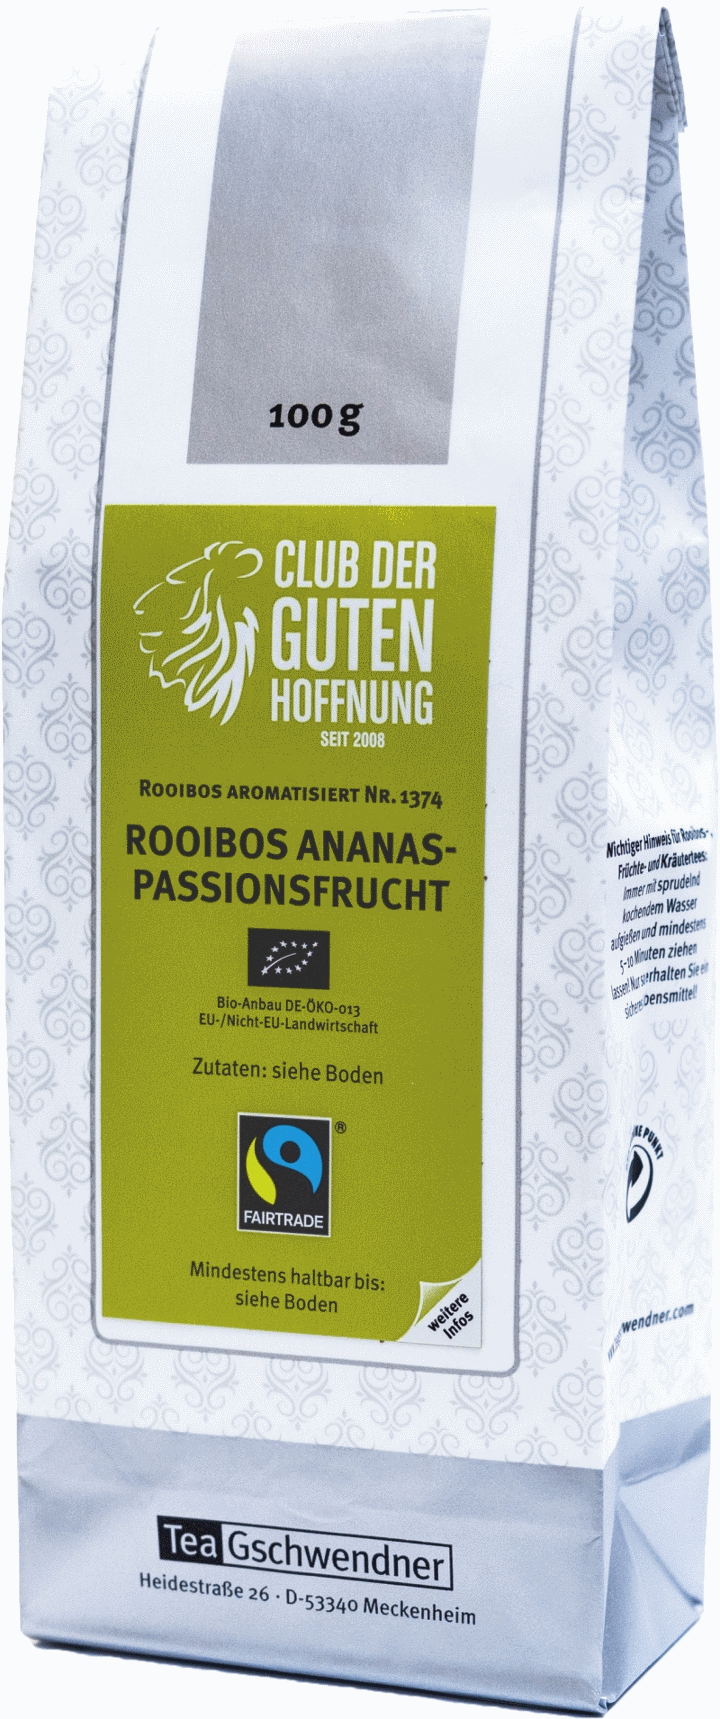 Rooibos Ananas- Passionsfrucht